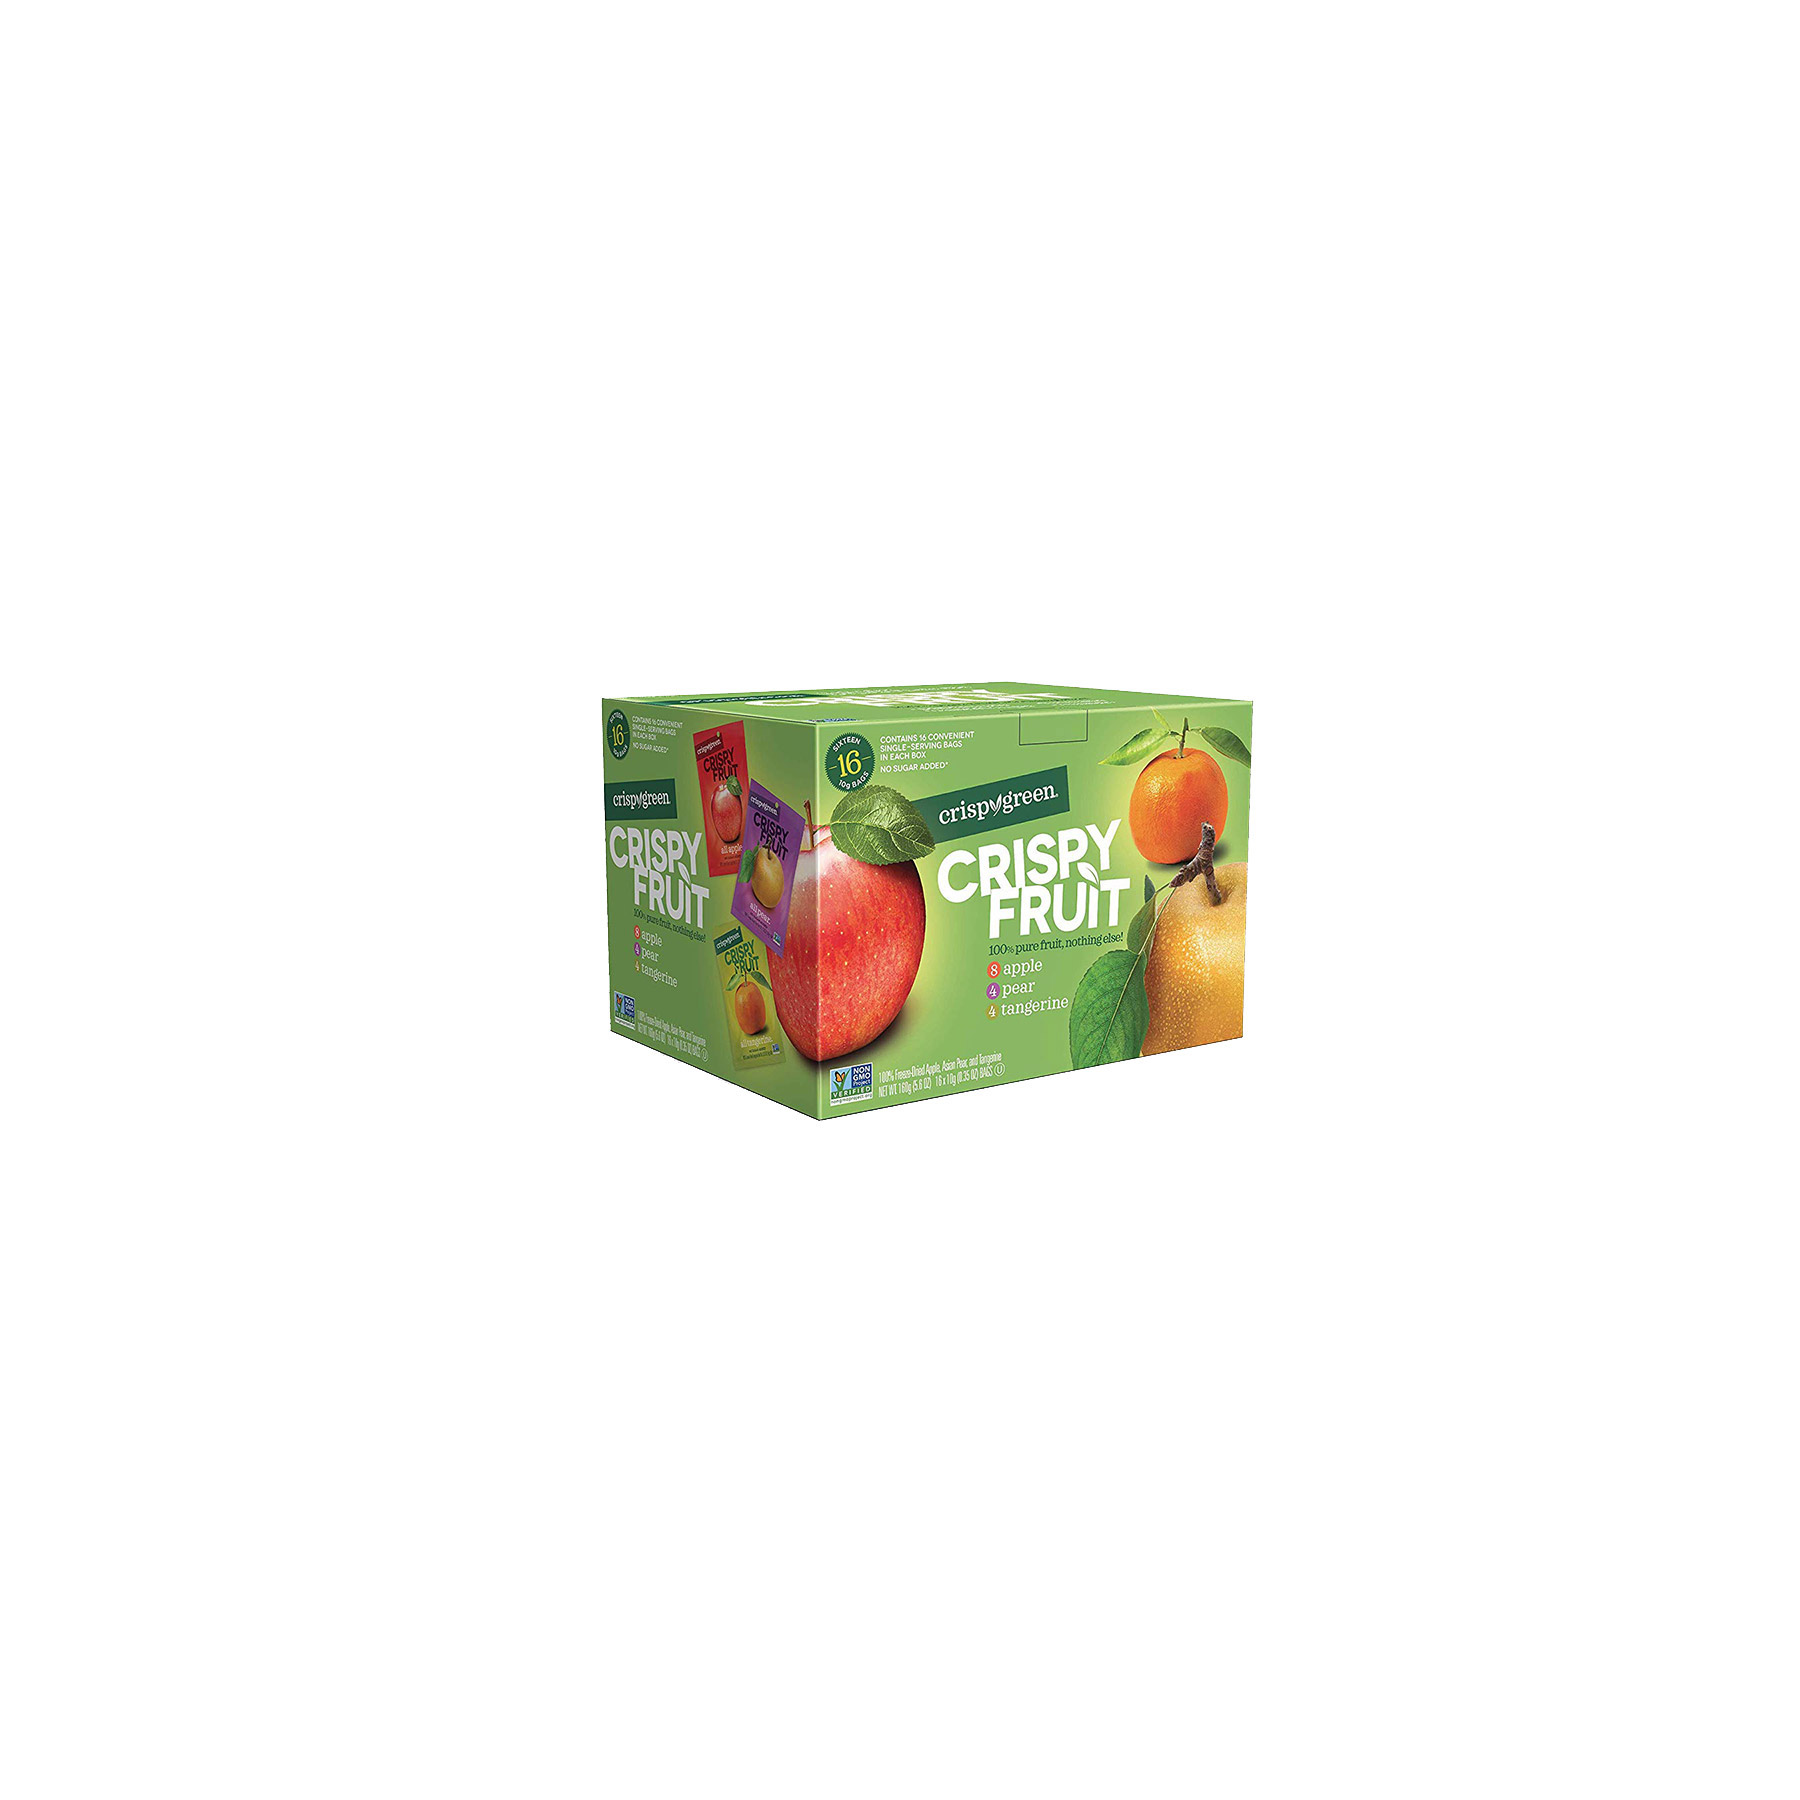 Crispy Green Natural Dried Fruit Variety